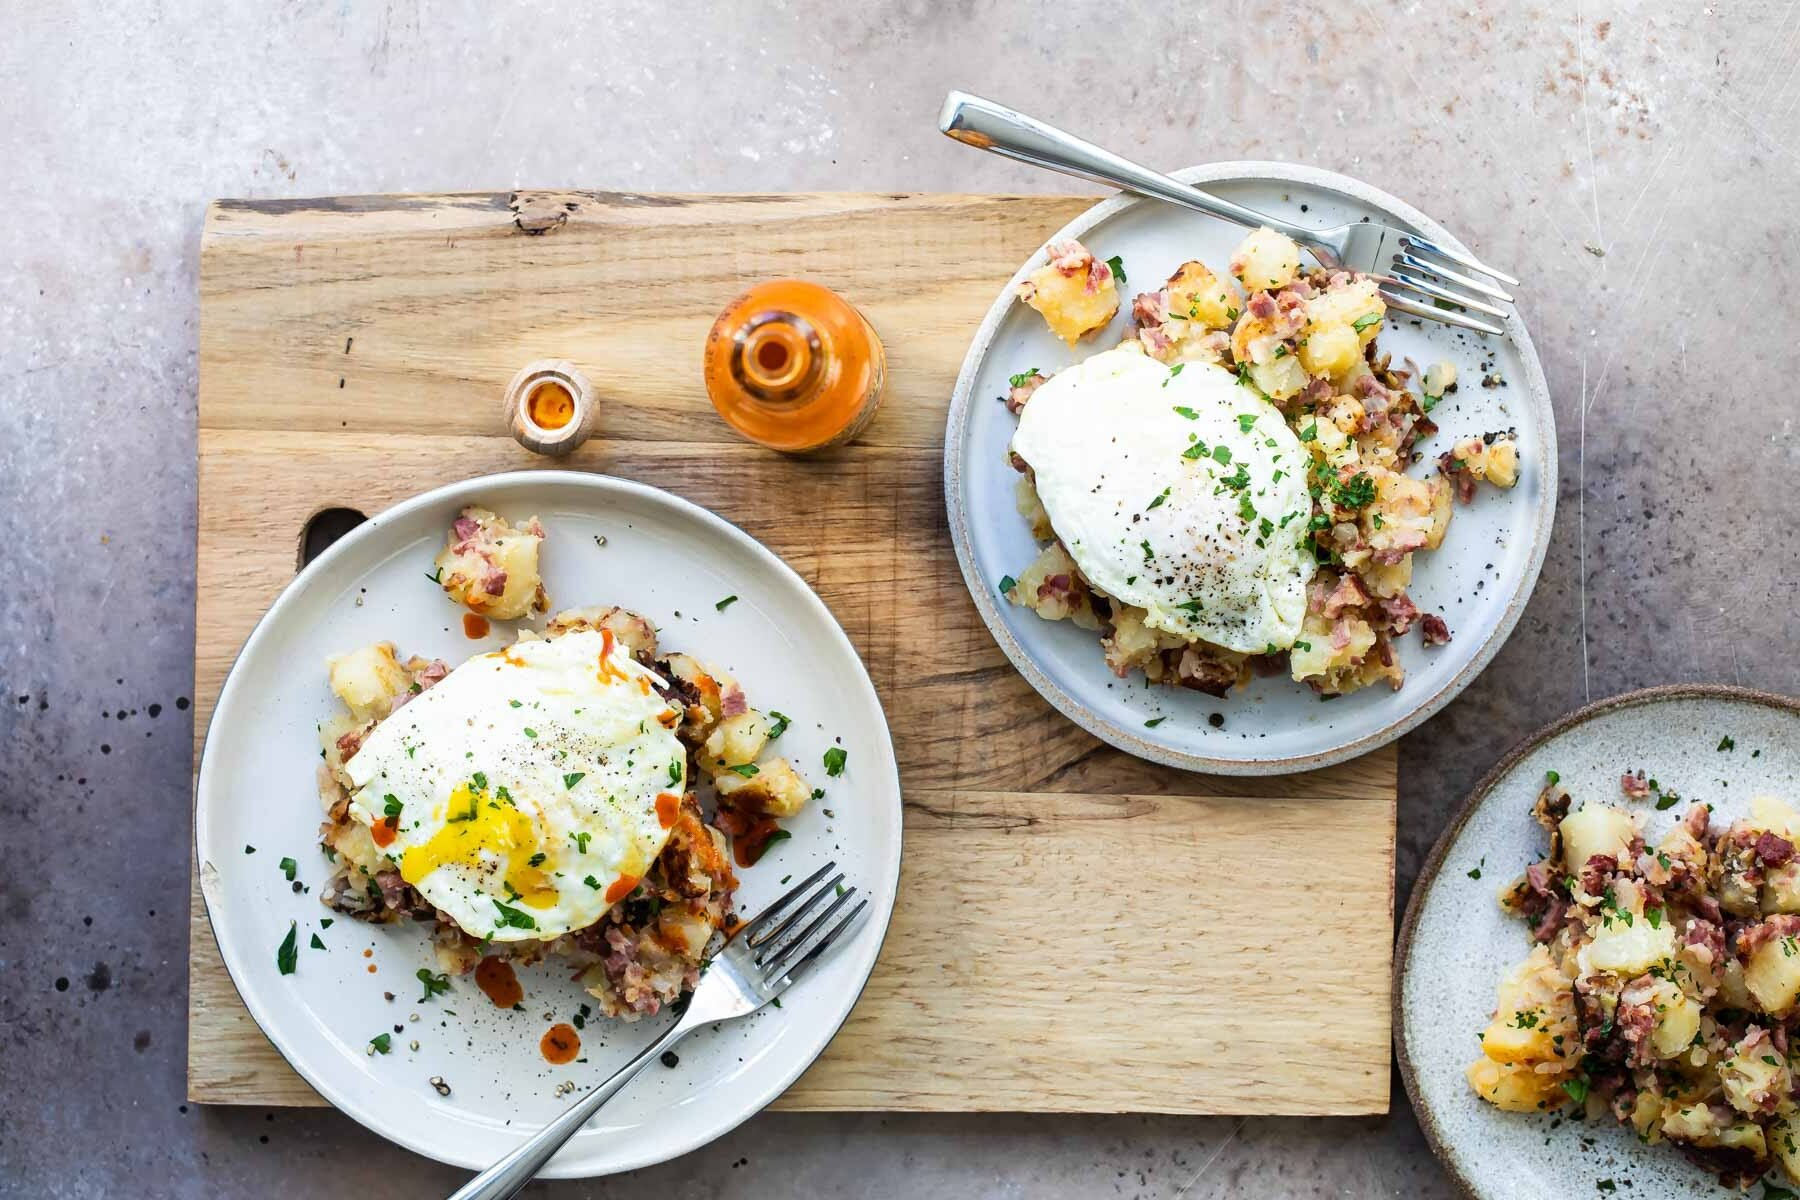 Corned beef hash on a gray plate topped with and egg and parsley.